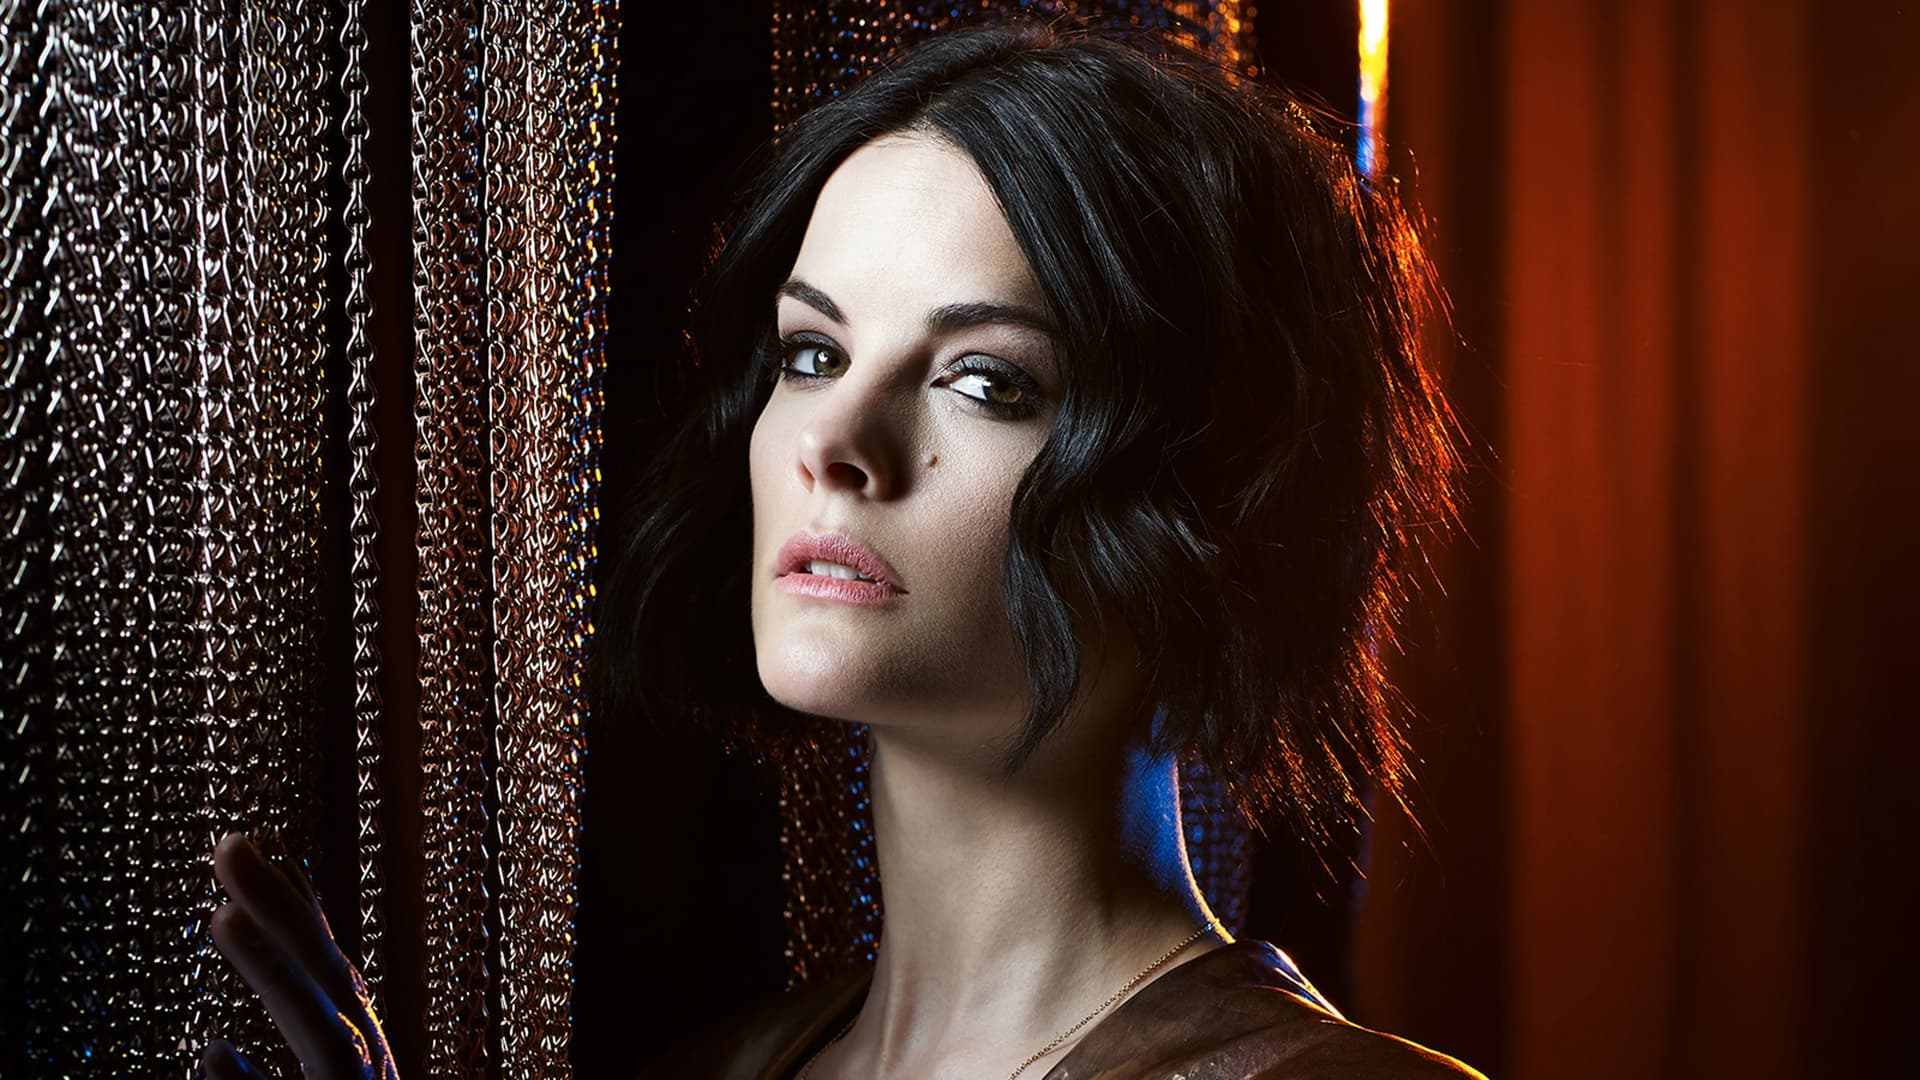 Nature Animals Wallpaper 16 Jaimie Alexander Wallpapers Hd High Quality Resolution